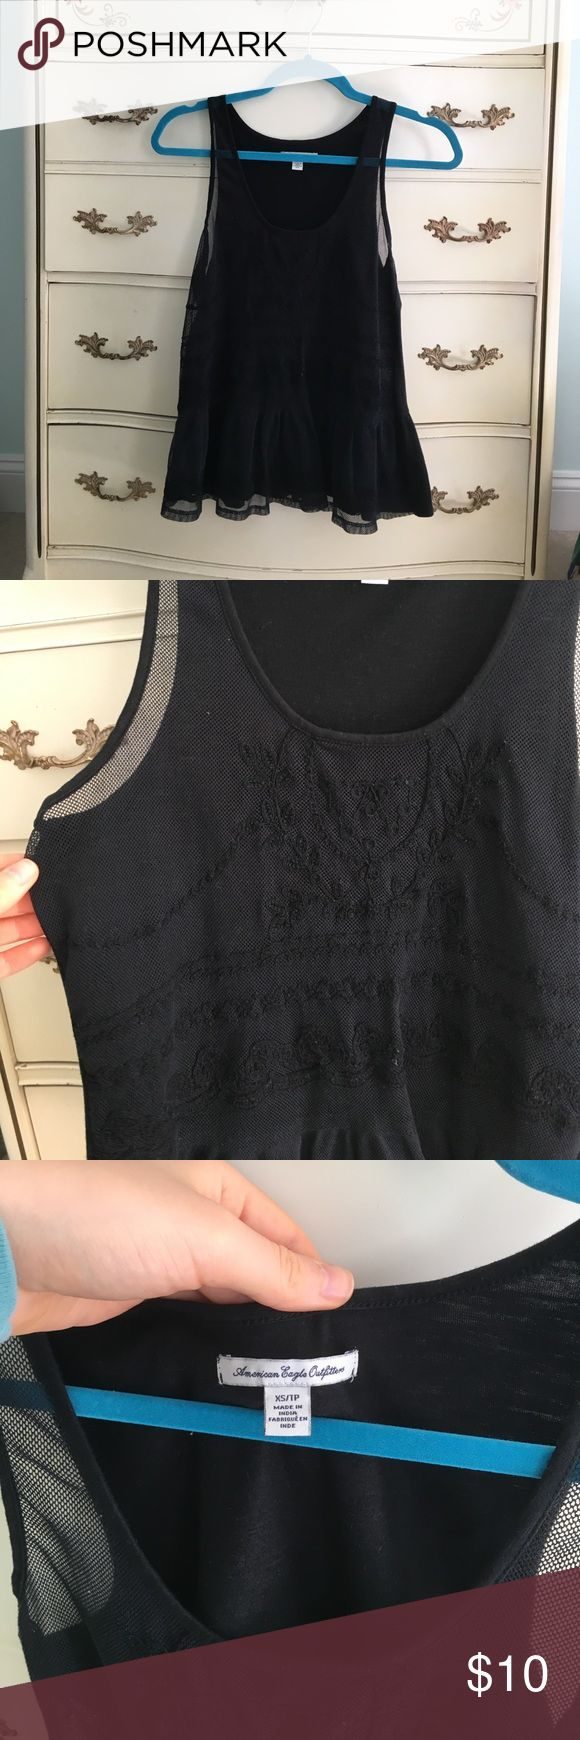 American Eagle Black Peplum Top Front has a woven floral design and the back is solid black. Very cute, i just never wear it anymore! size xs American Eagle Outfitters Tops Tank Tops